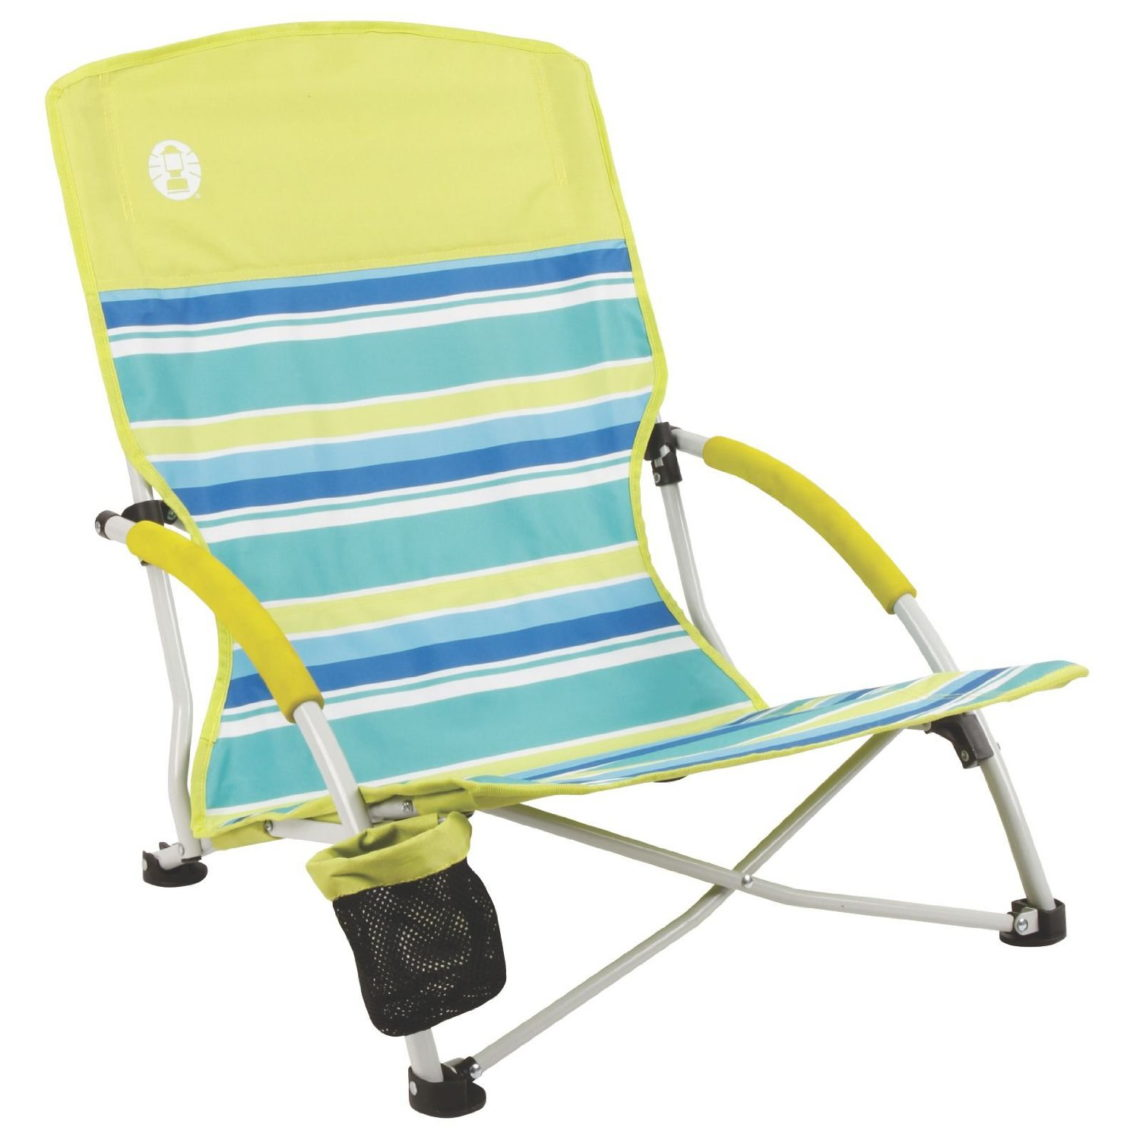 tommy bahama backpack cooler chair - Tommy Bahama Chairs Beach